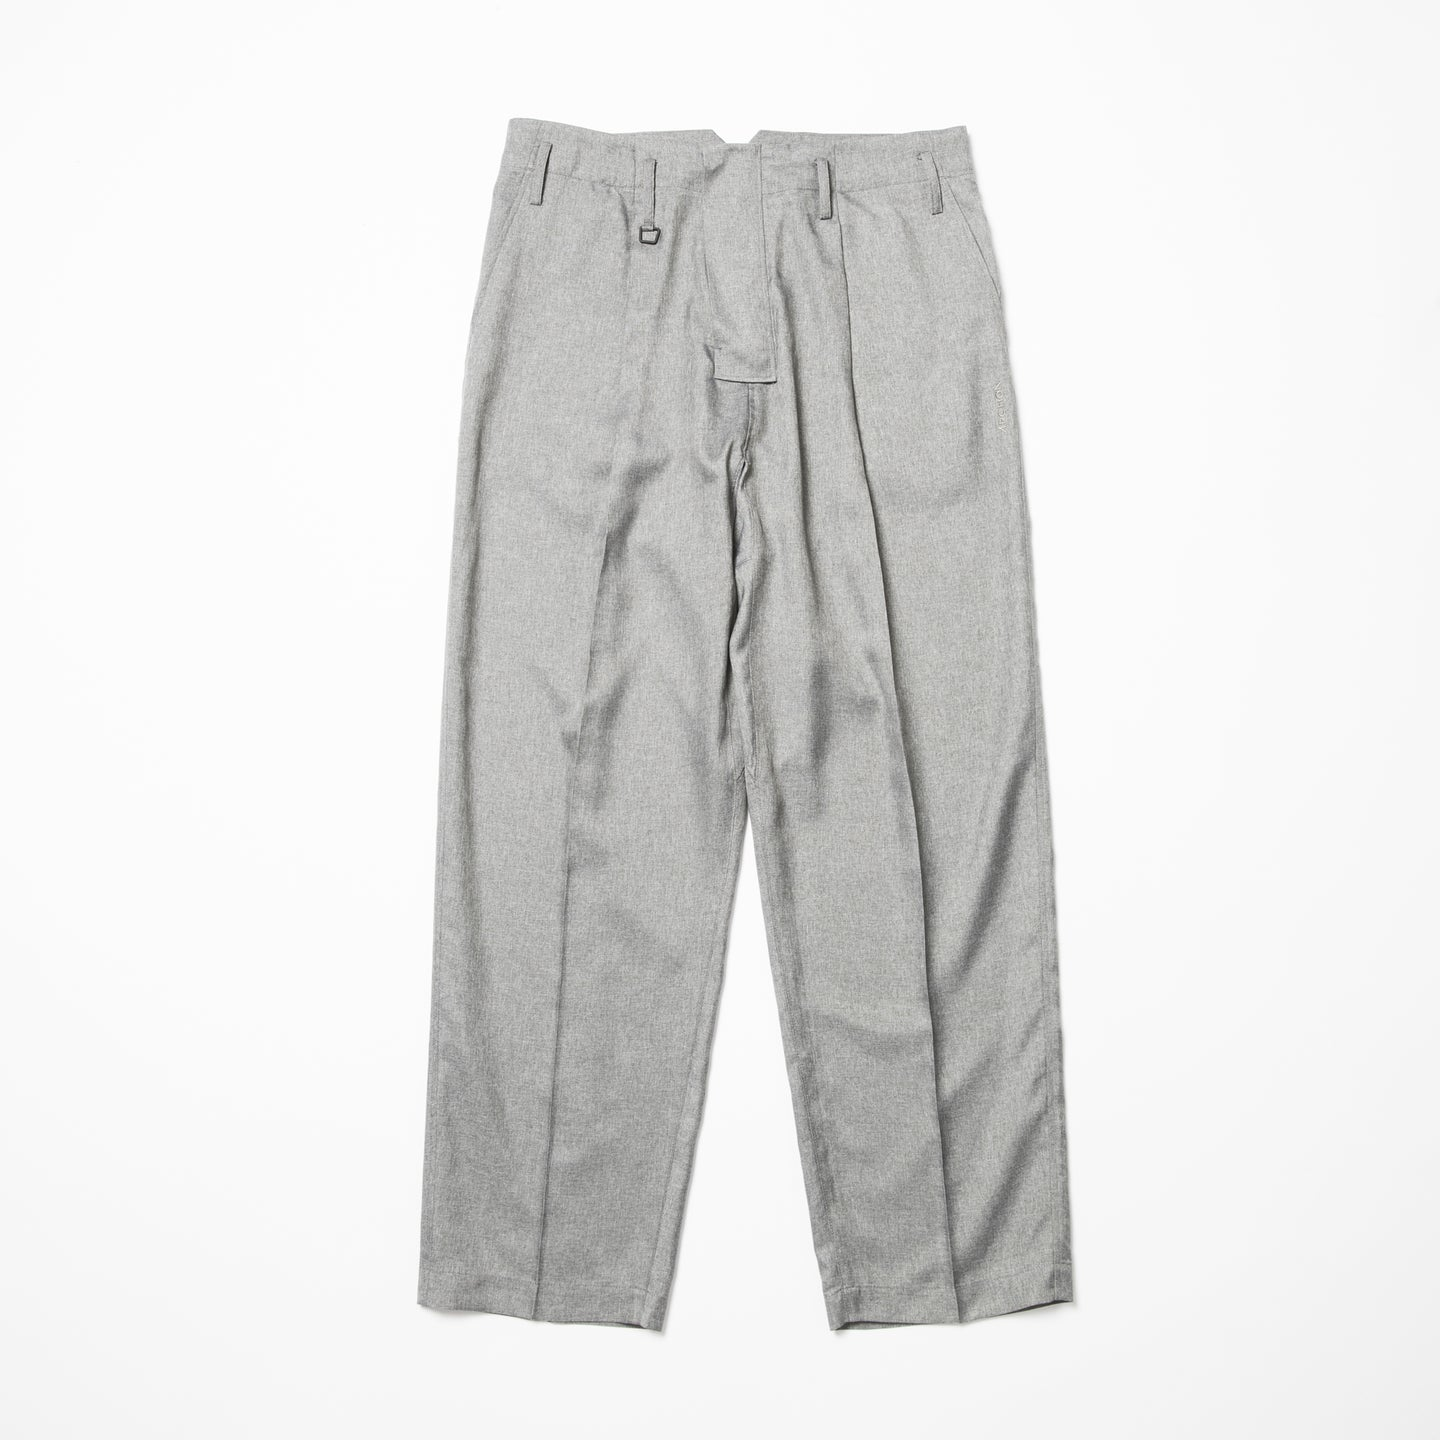 【SALE】Comfortable Pants